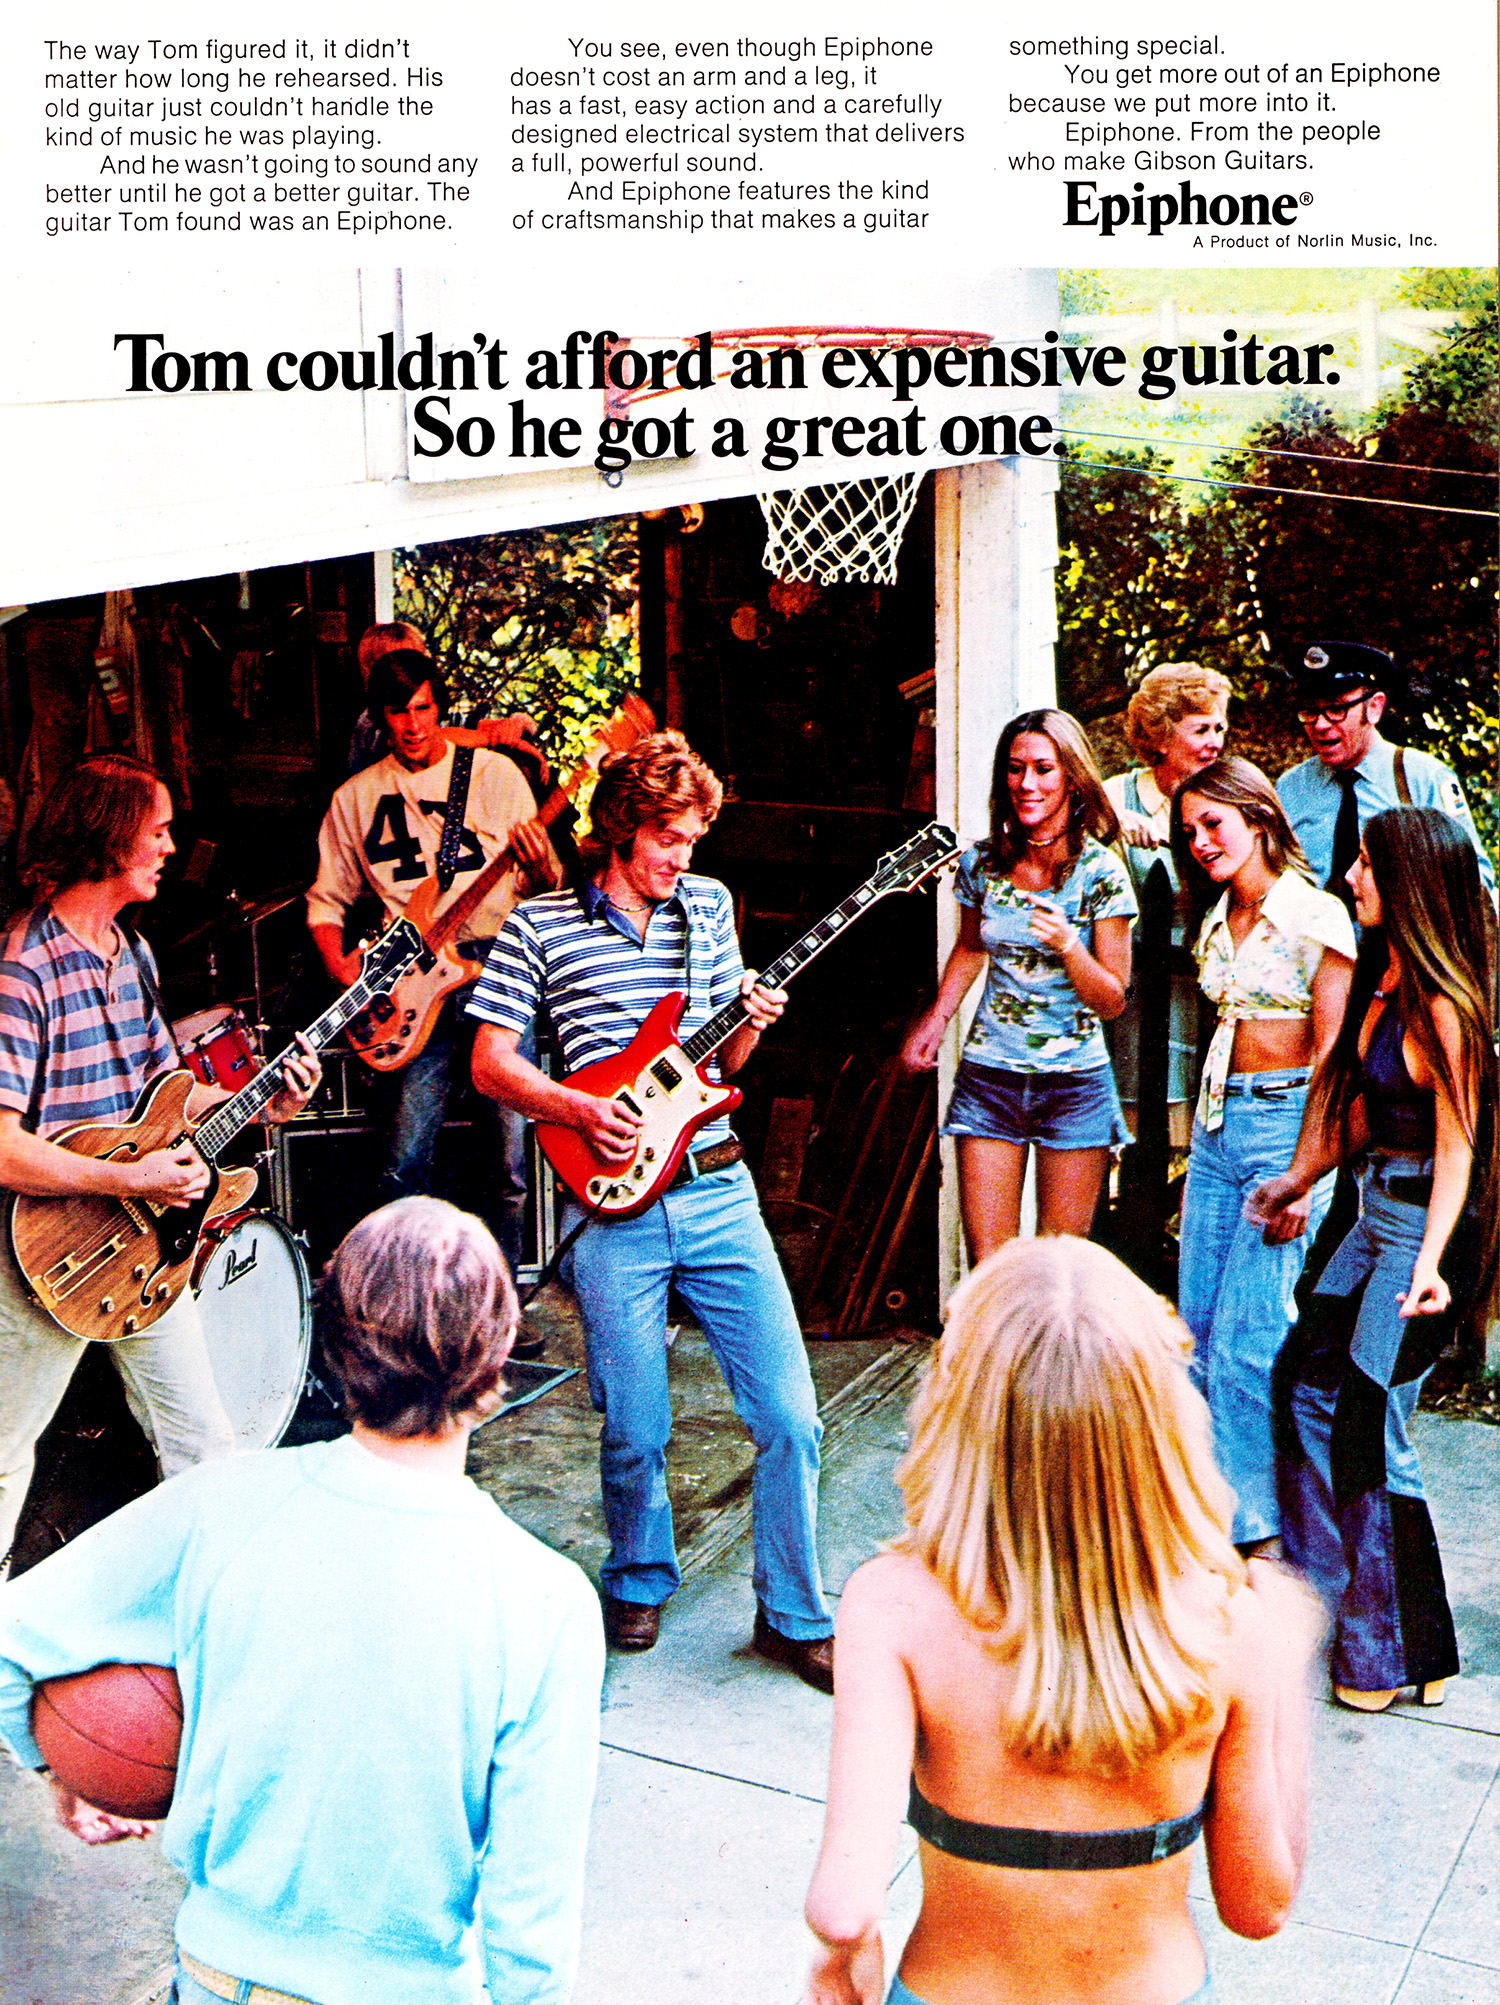 vintage guitar advert